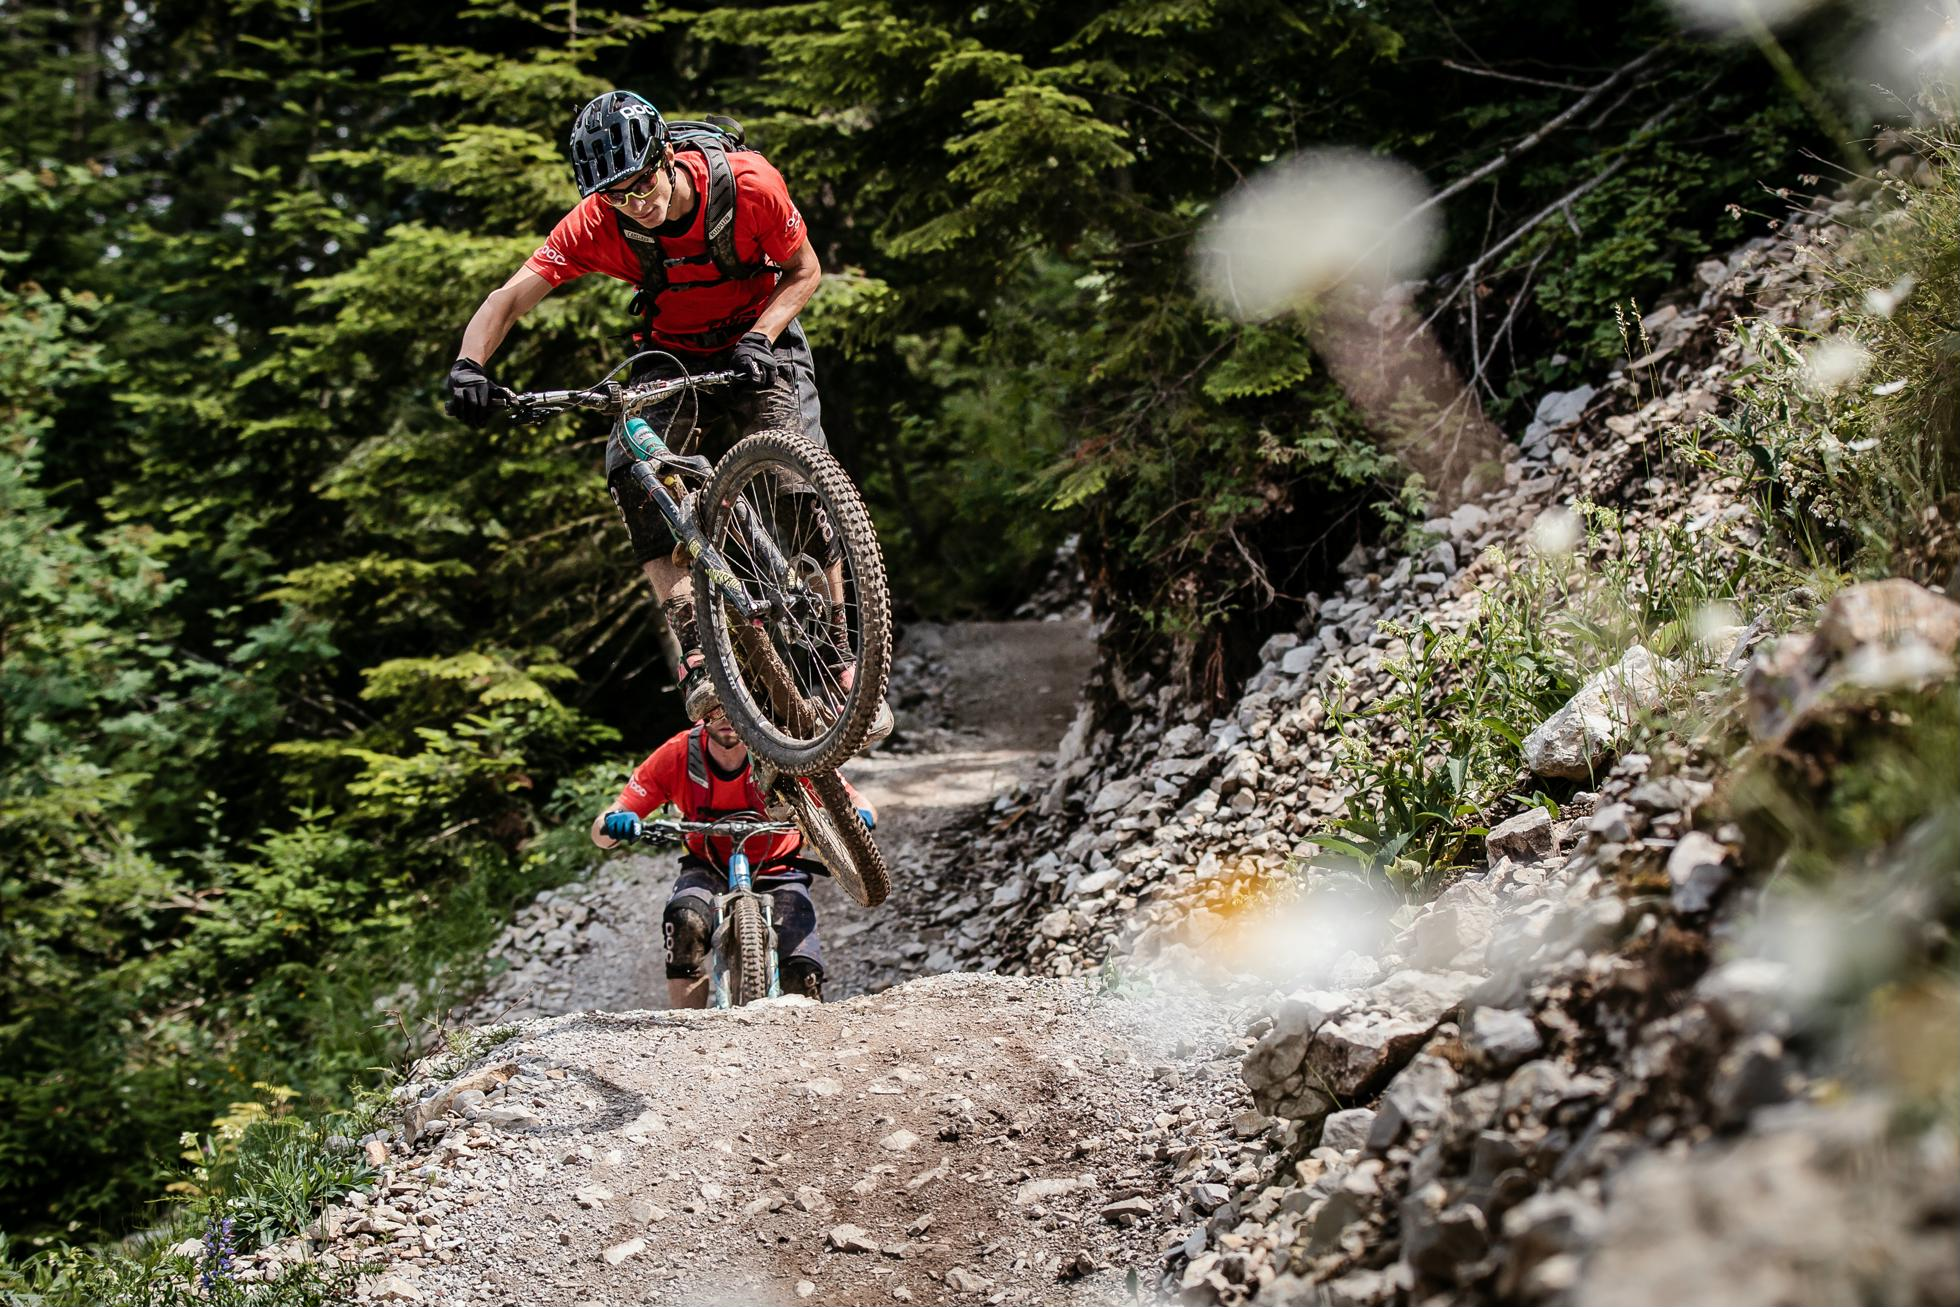 Percorsi di Mountain Bike in Trentino